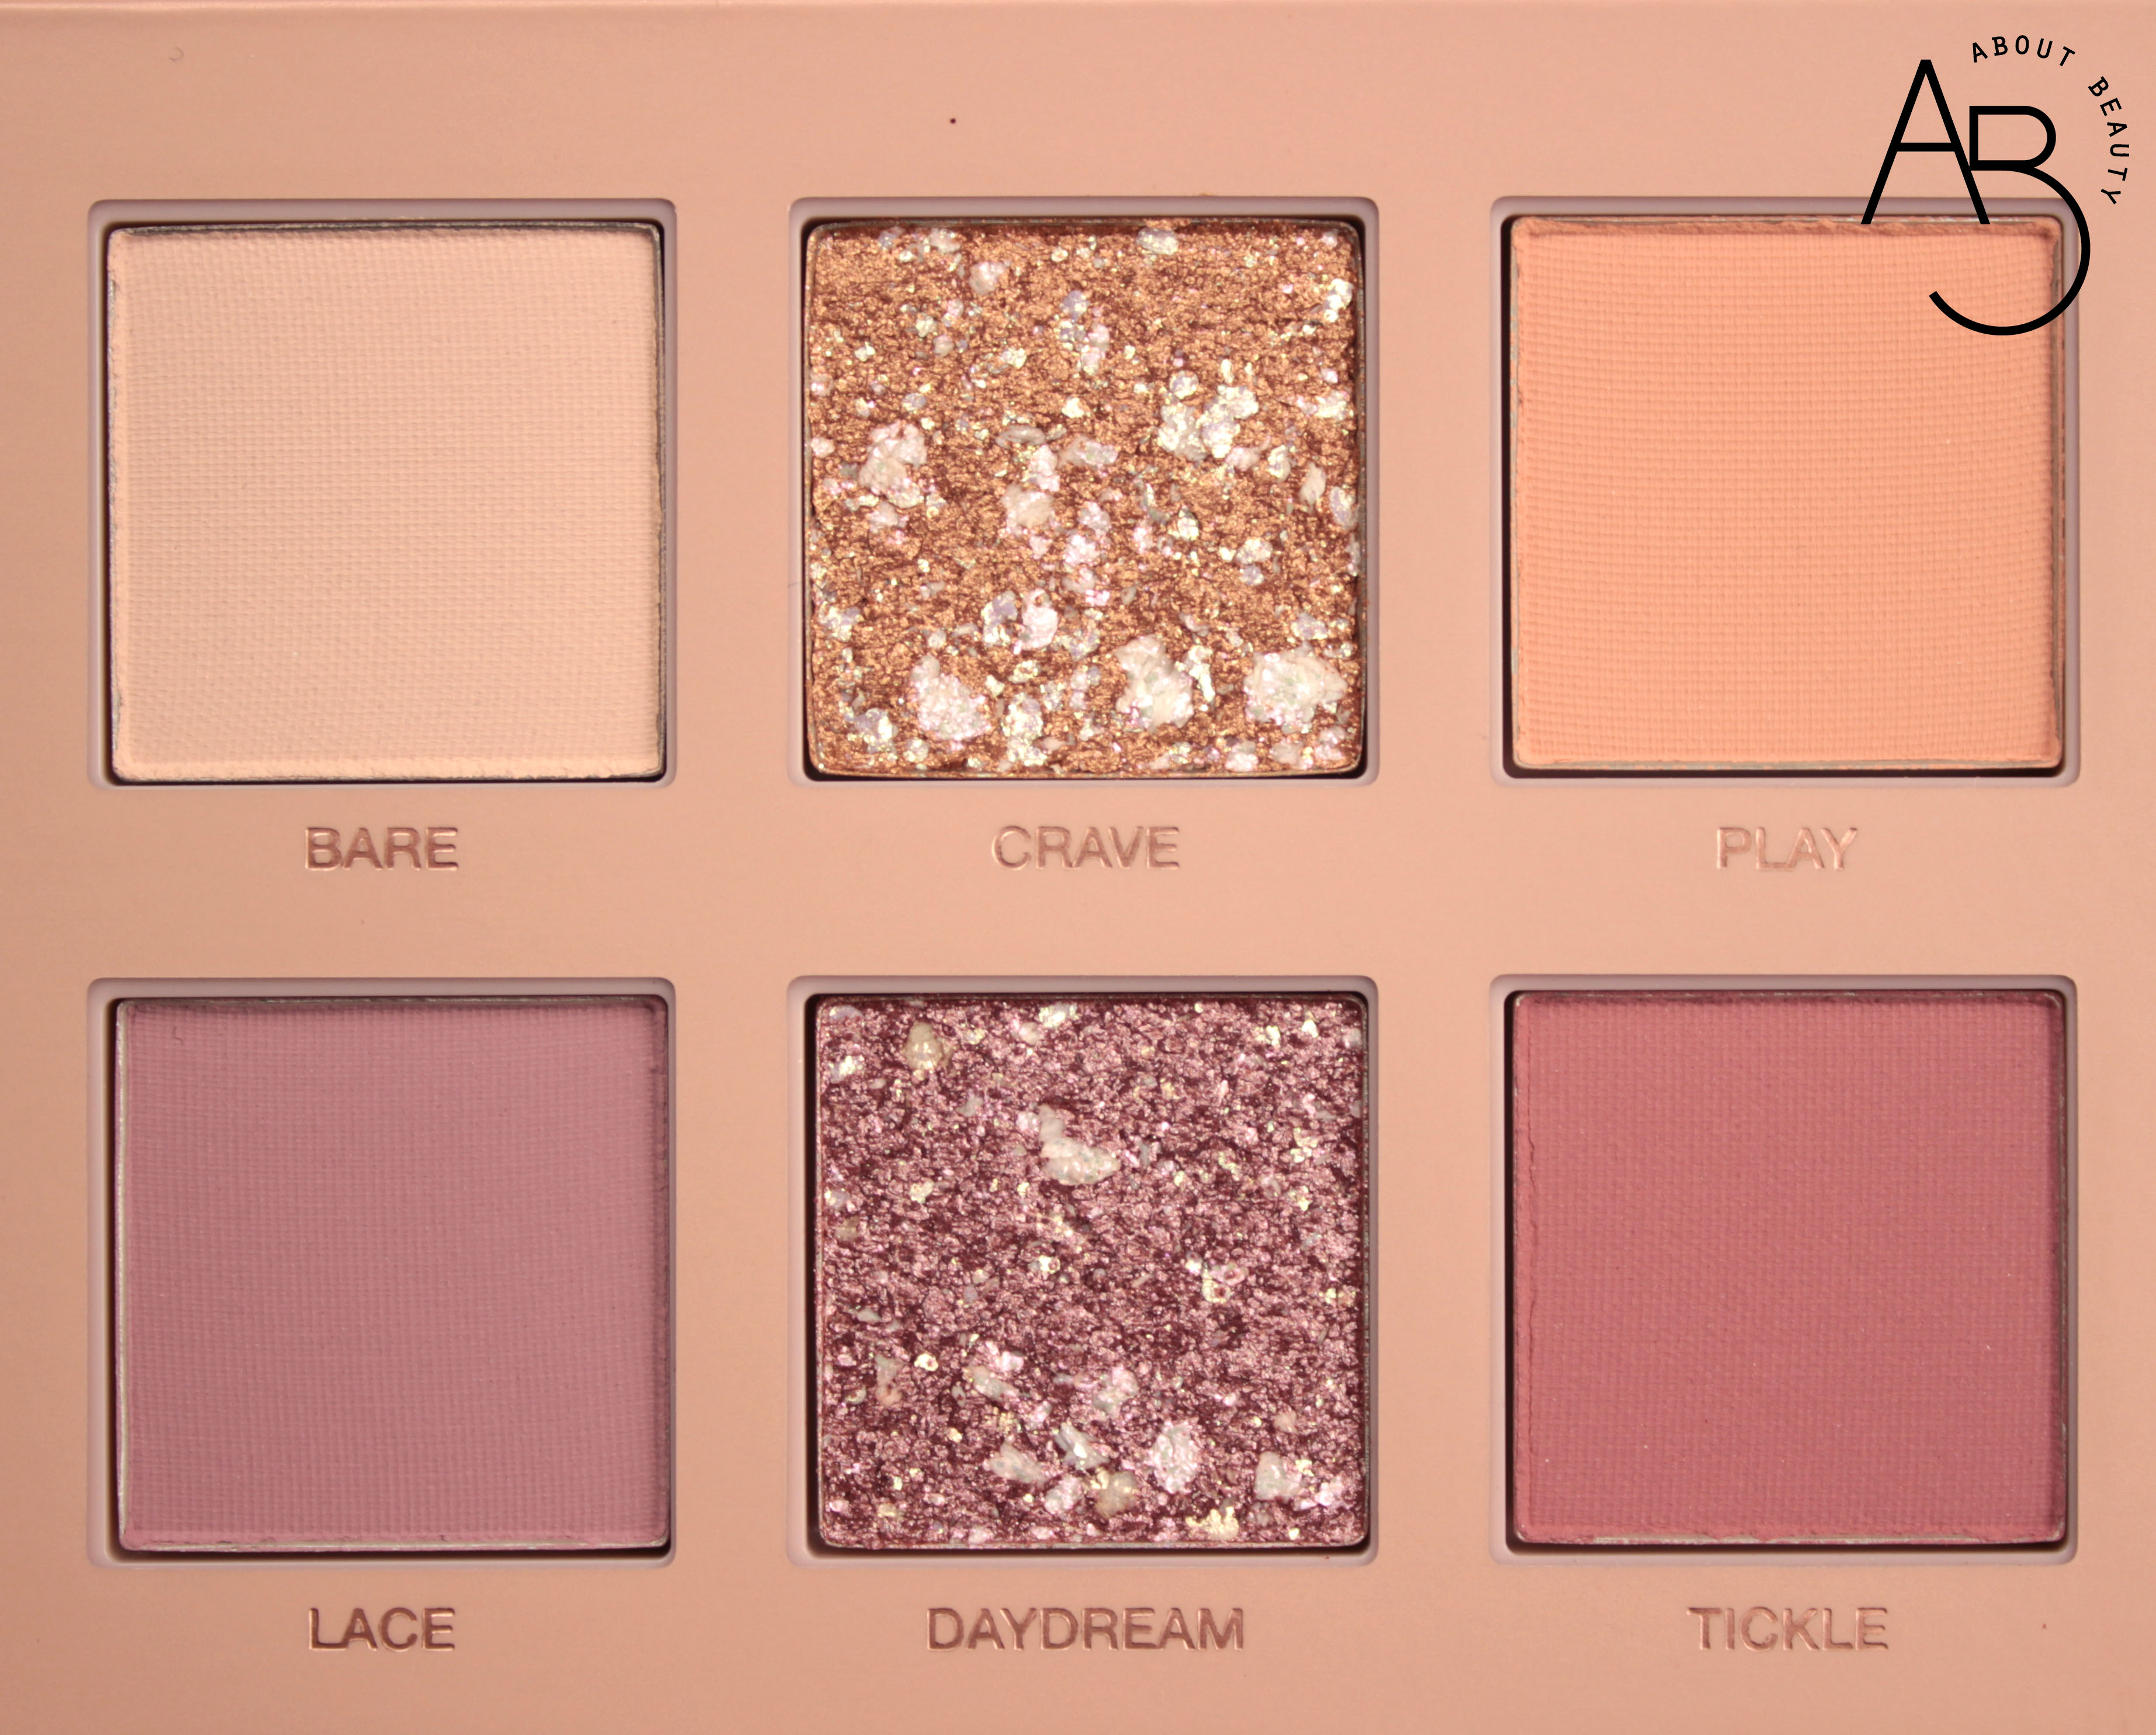 Huda Beauty New Nude Eyeshadow Palette Ombretti - review recensione info prezzo dove acquistare swatch sconto - Bare Crave Play Lace Daydream Tickle